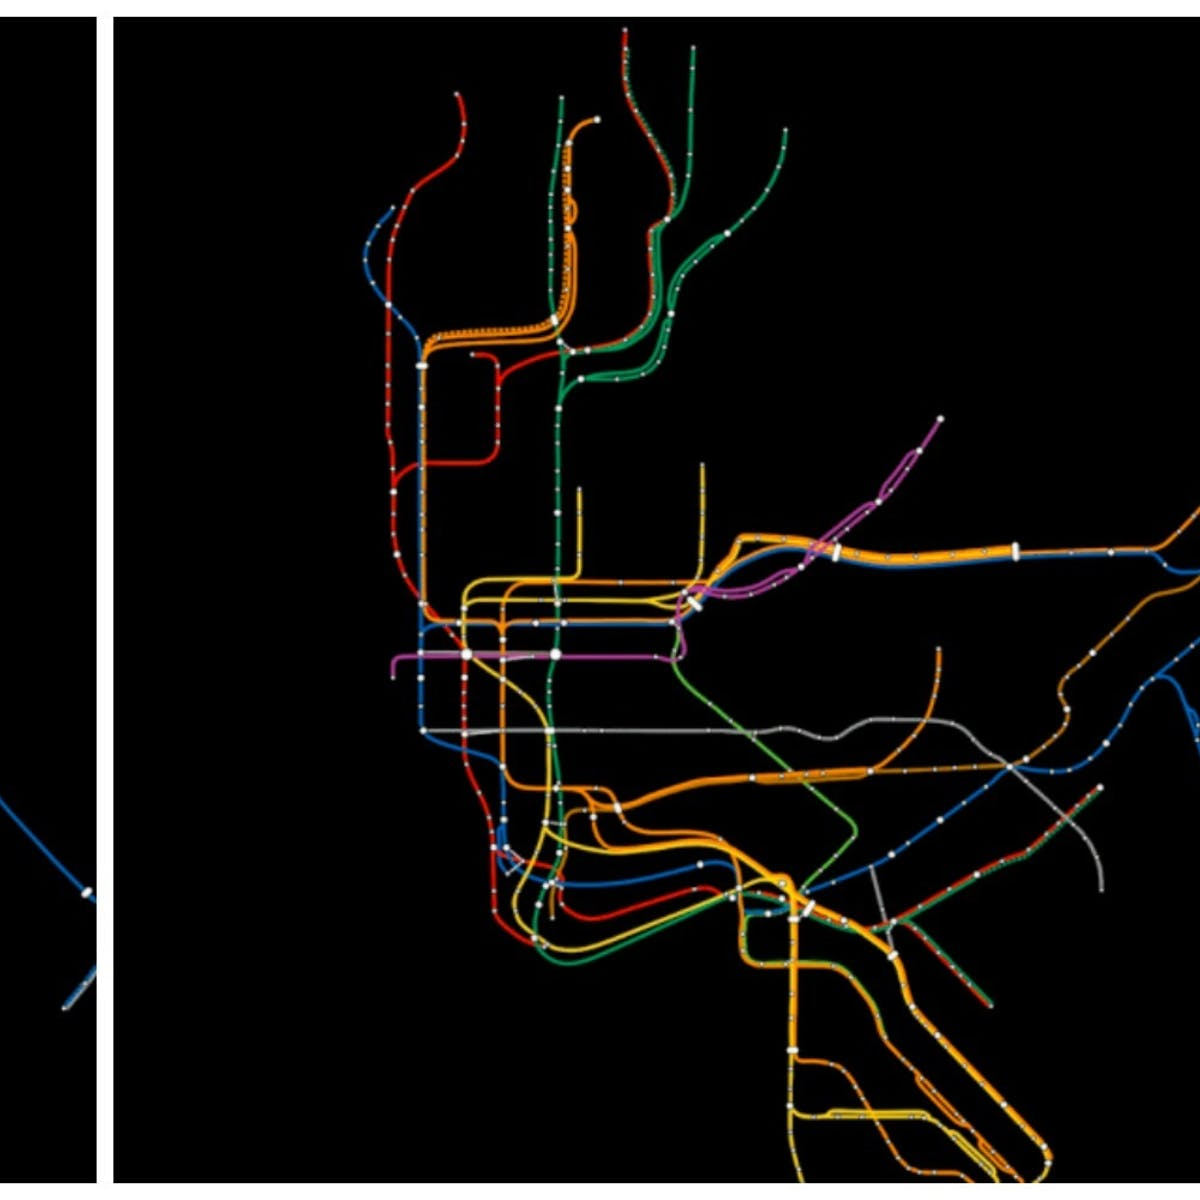 Simplified New York Subway Map.These Visualizations Show The Gap Between Maps And Reality Inverse